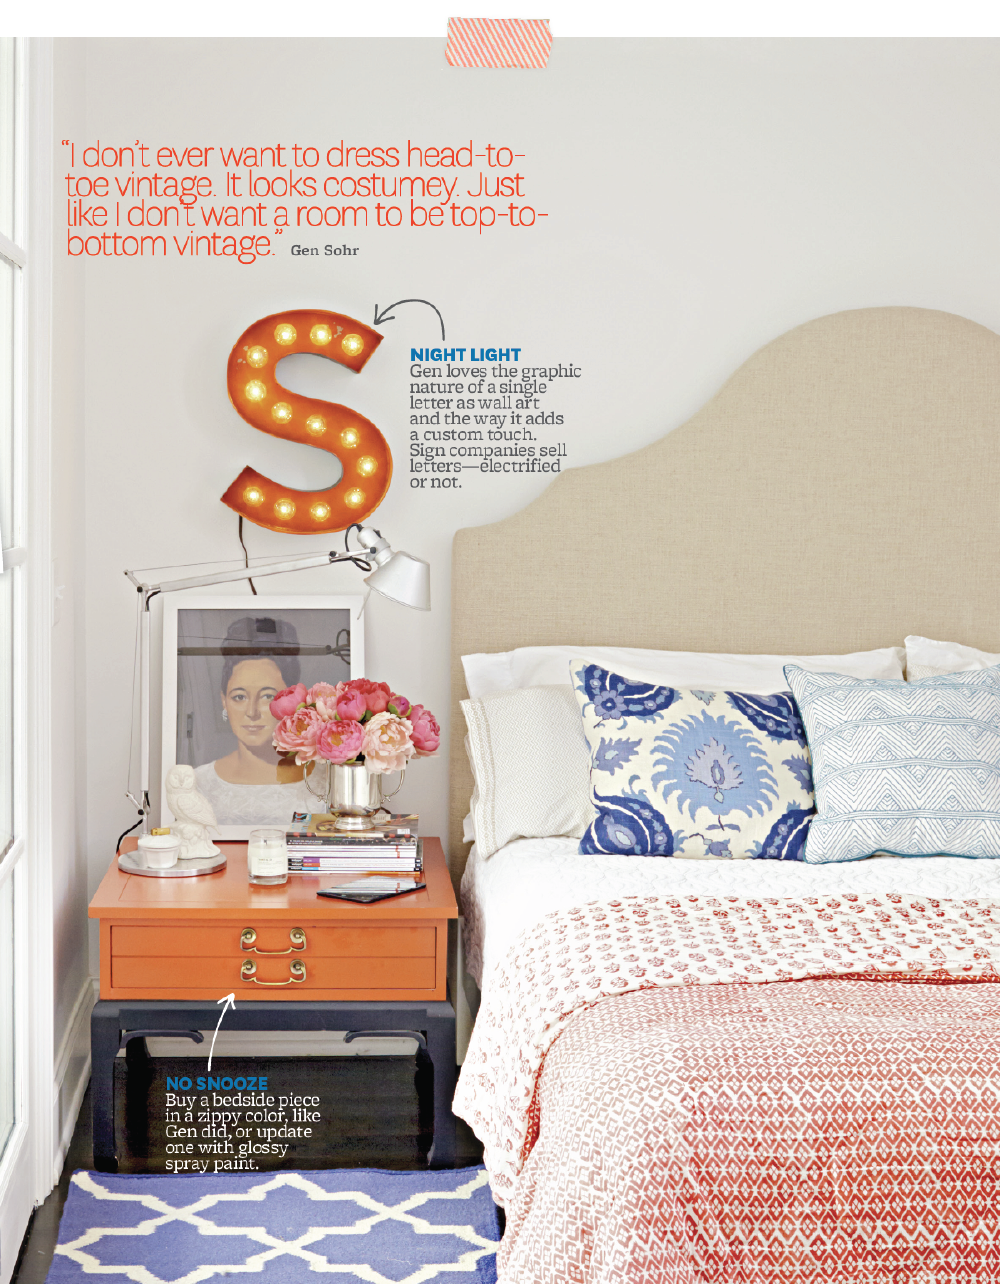 styling by Eddie Ross, photo by David Tsay for Better Homes & Gardens Magazine